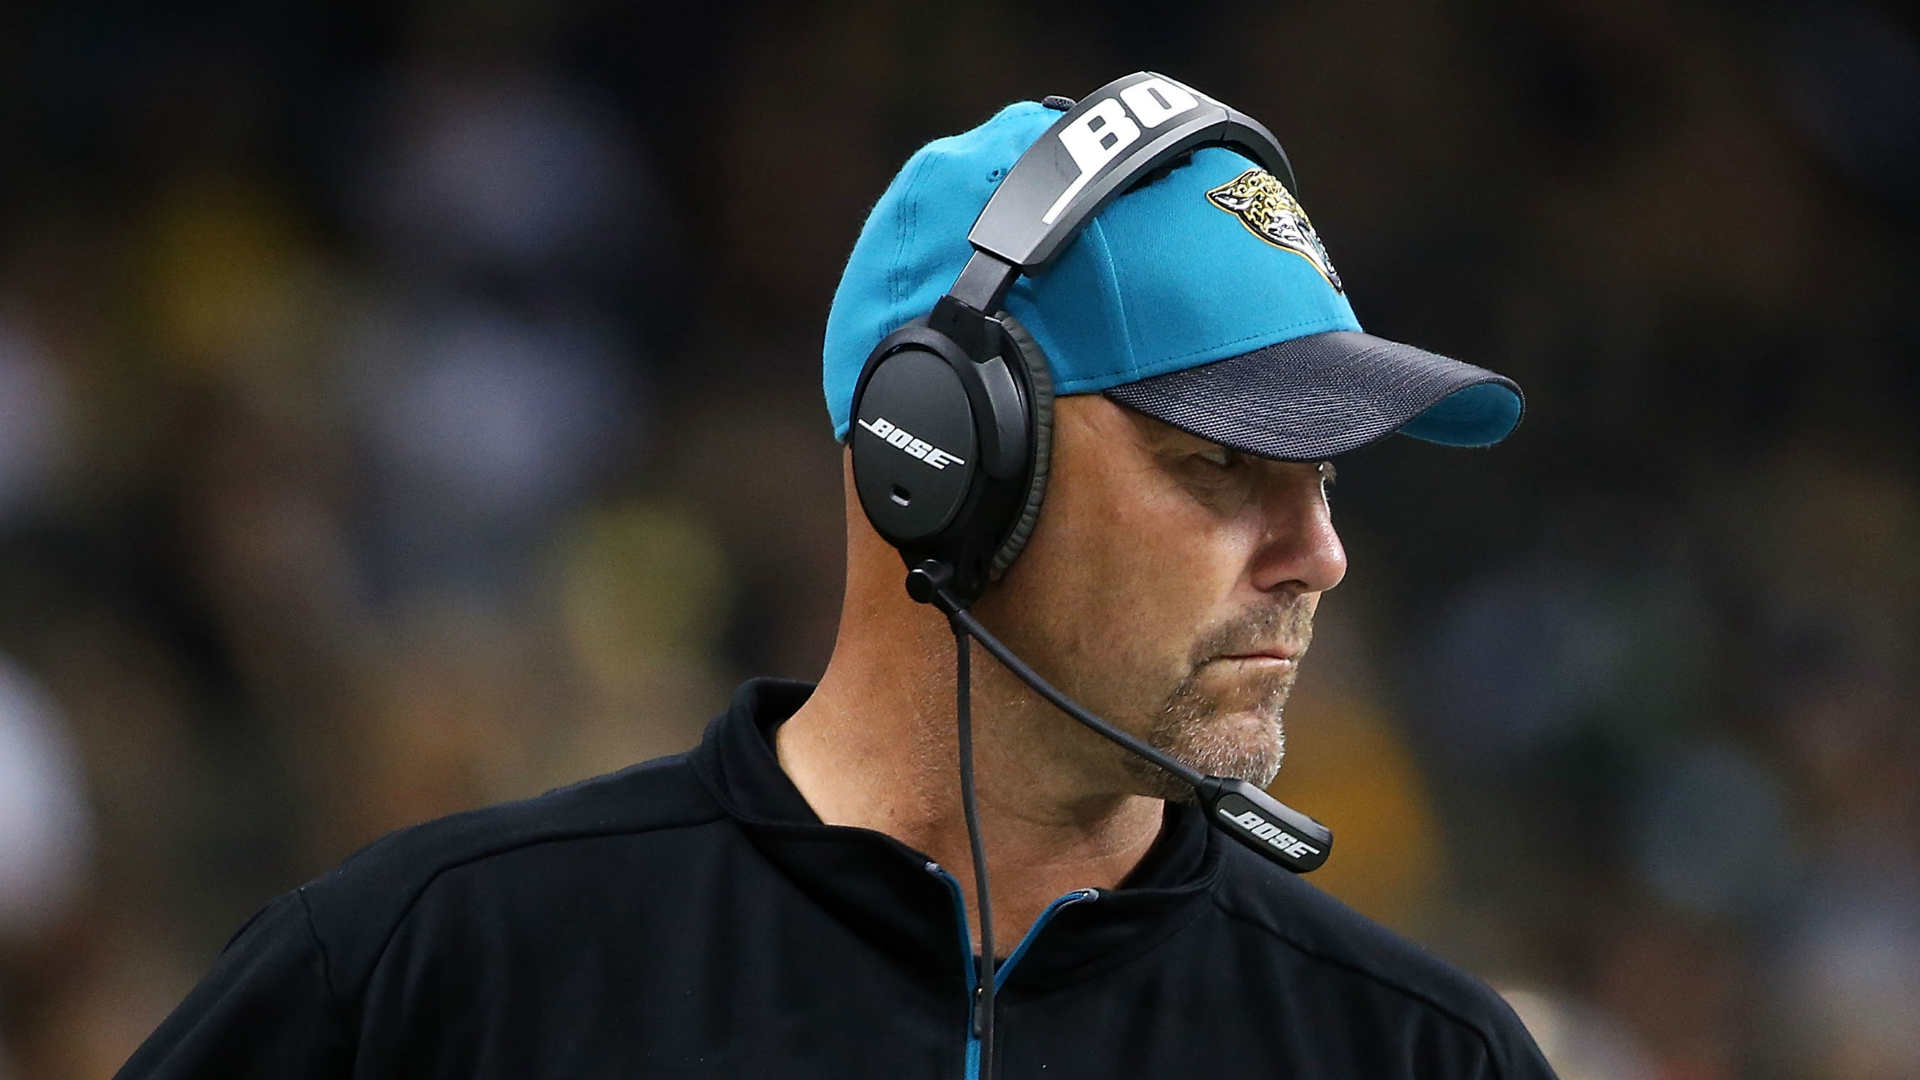 Jags won't fire coach Gus Bradley for now, owner says ...